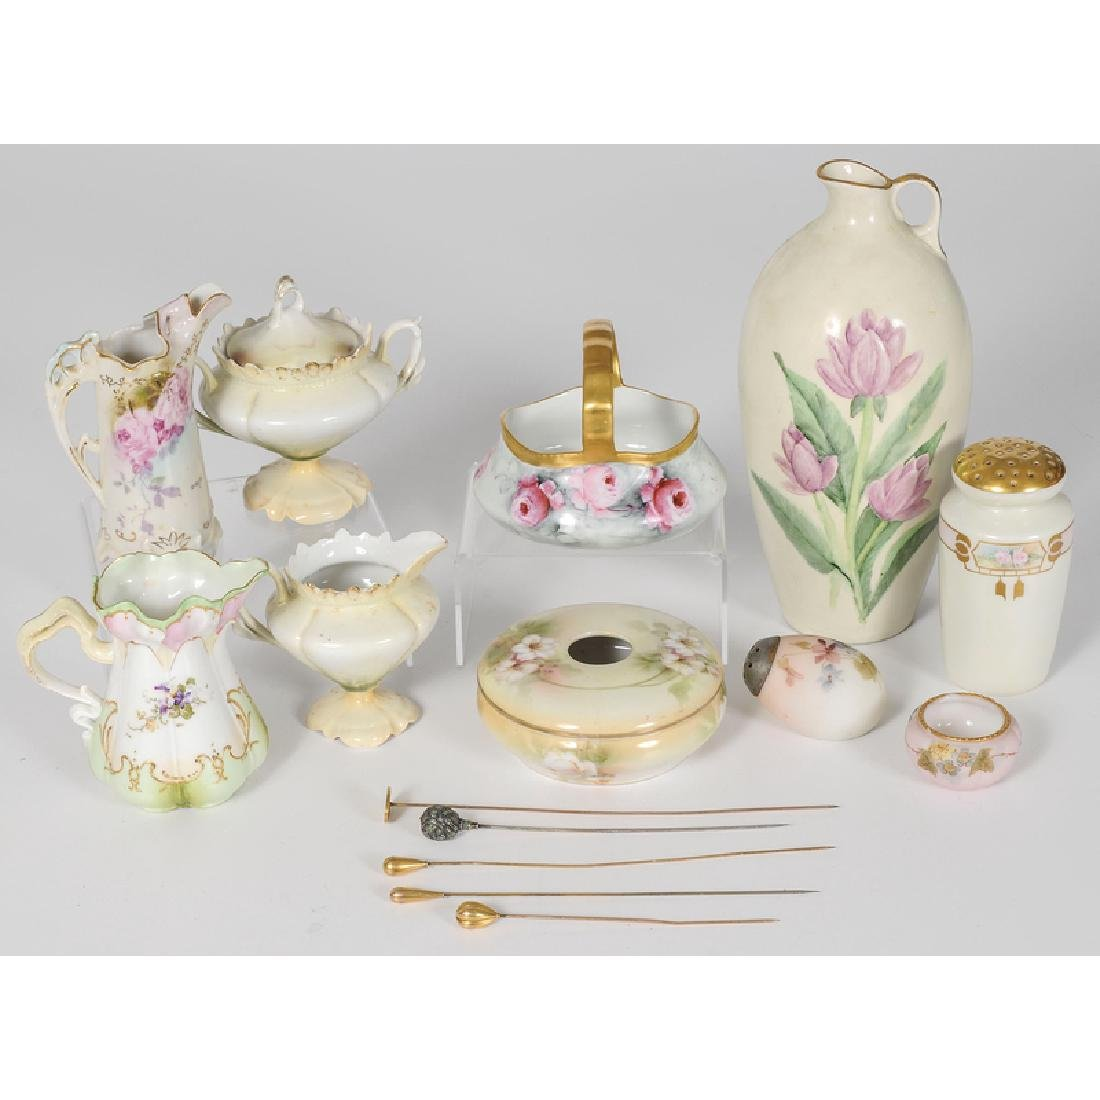 Continental Floral-Decorated Porcelain and Glass